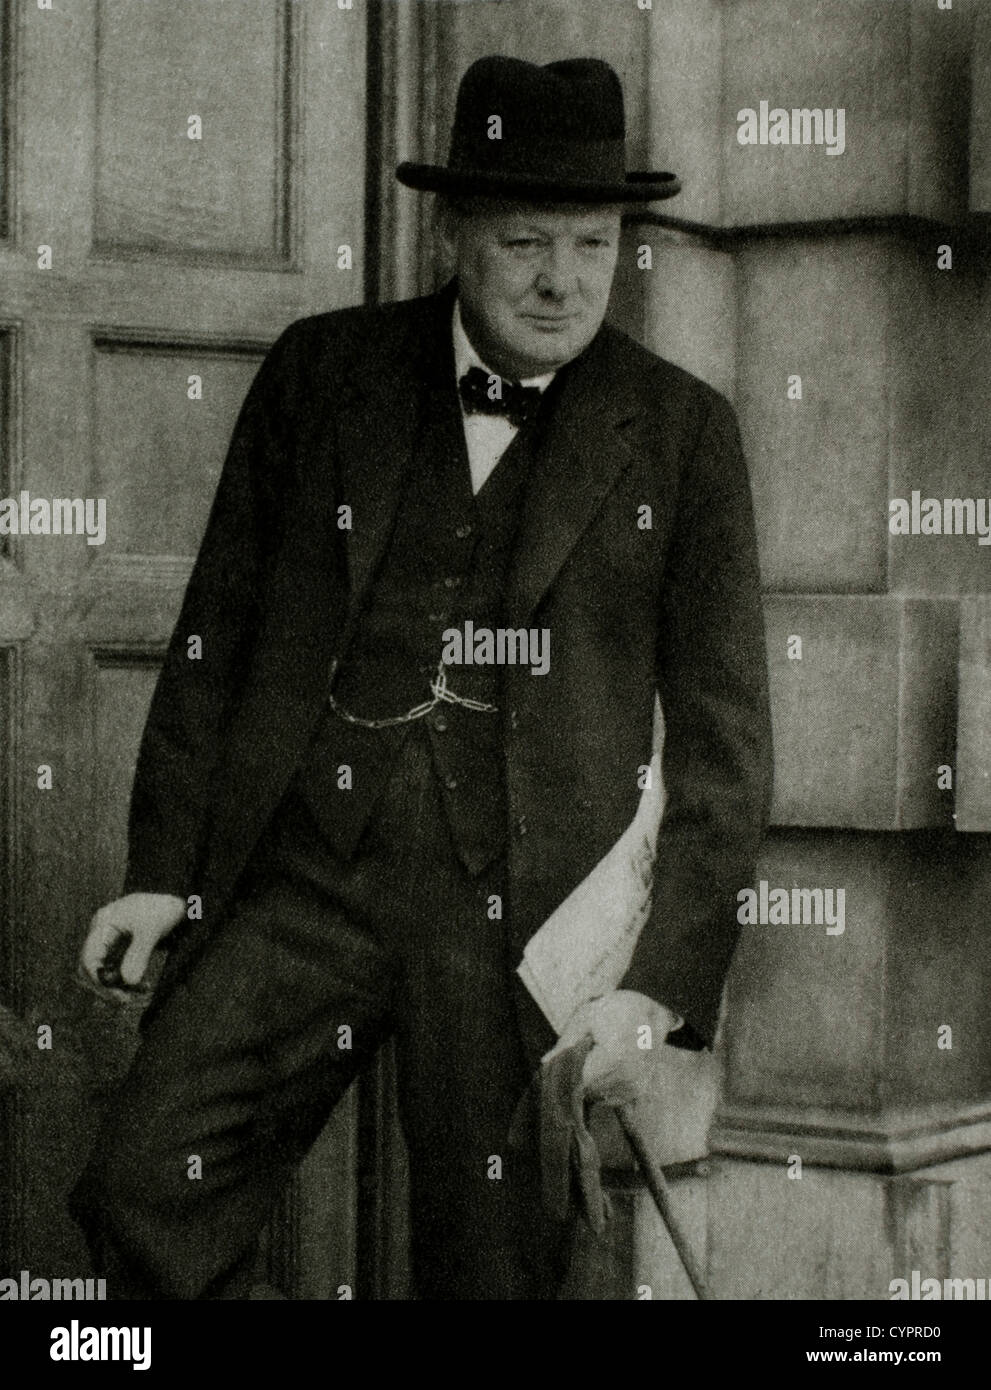 Winston Churchill (1874-1965), British Statesman, Soldier & Author, Prime Minister of Great Britain 1940-45 - Stock Image